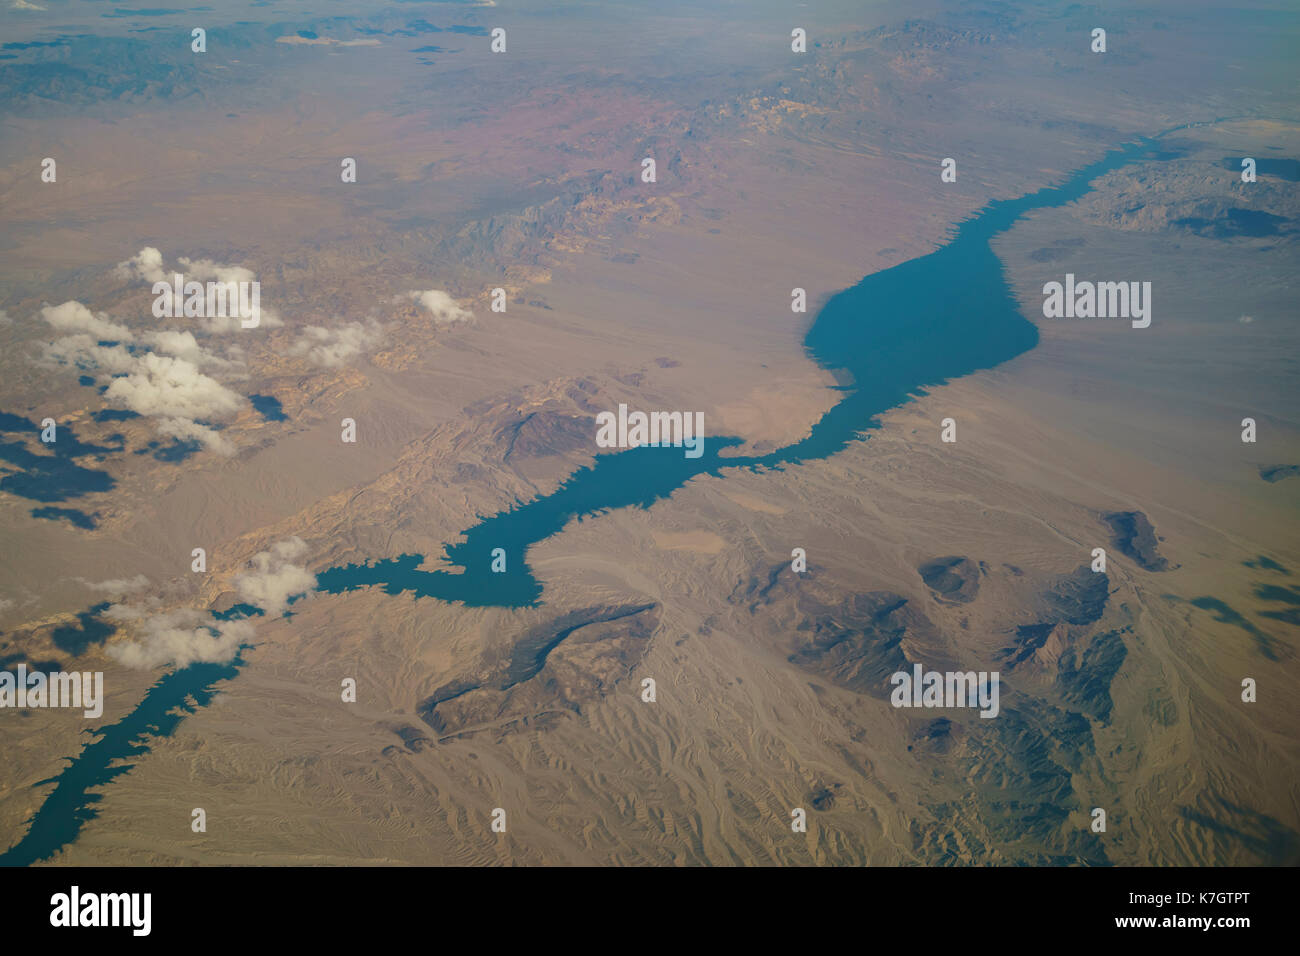 Aerial view of Lake Mead, view from window seat in an airplane at Nevada, U.S.A. Stock Photo